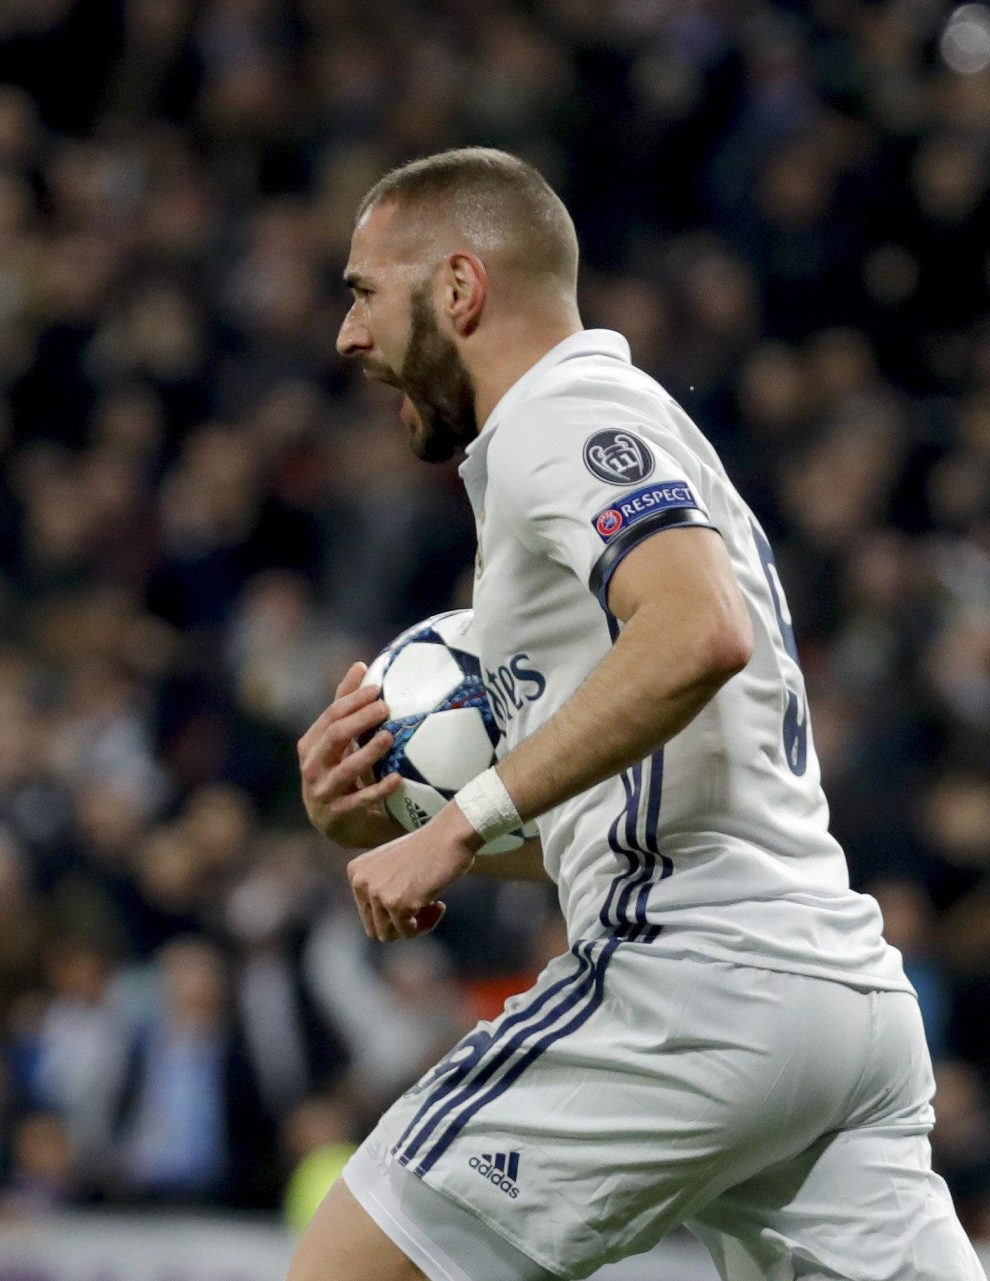 Real Madrid's French striker Karim Benzema jubilates a goal, the first against Napoli, during their UEFA Champions League round of 16 match at Santiago Bernabeu stadium in Madrid, Spain, 15 February 2017. EFE/JuanJo Martin